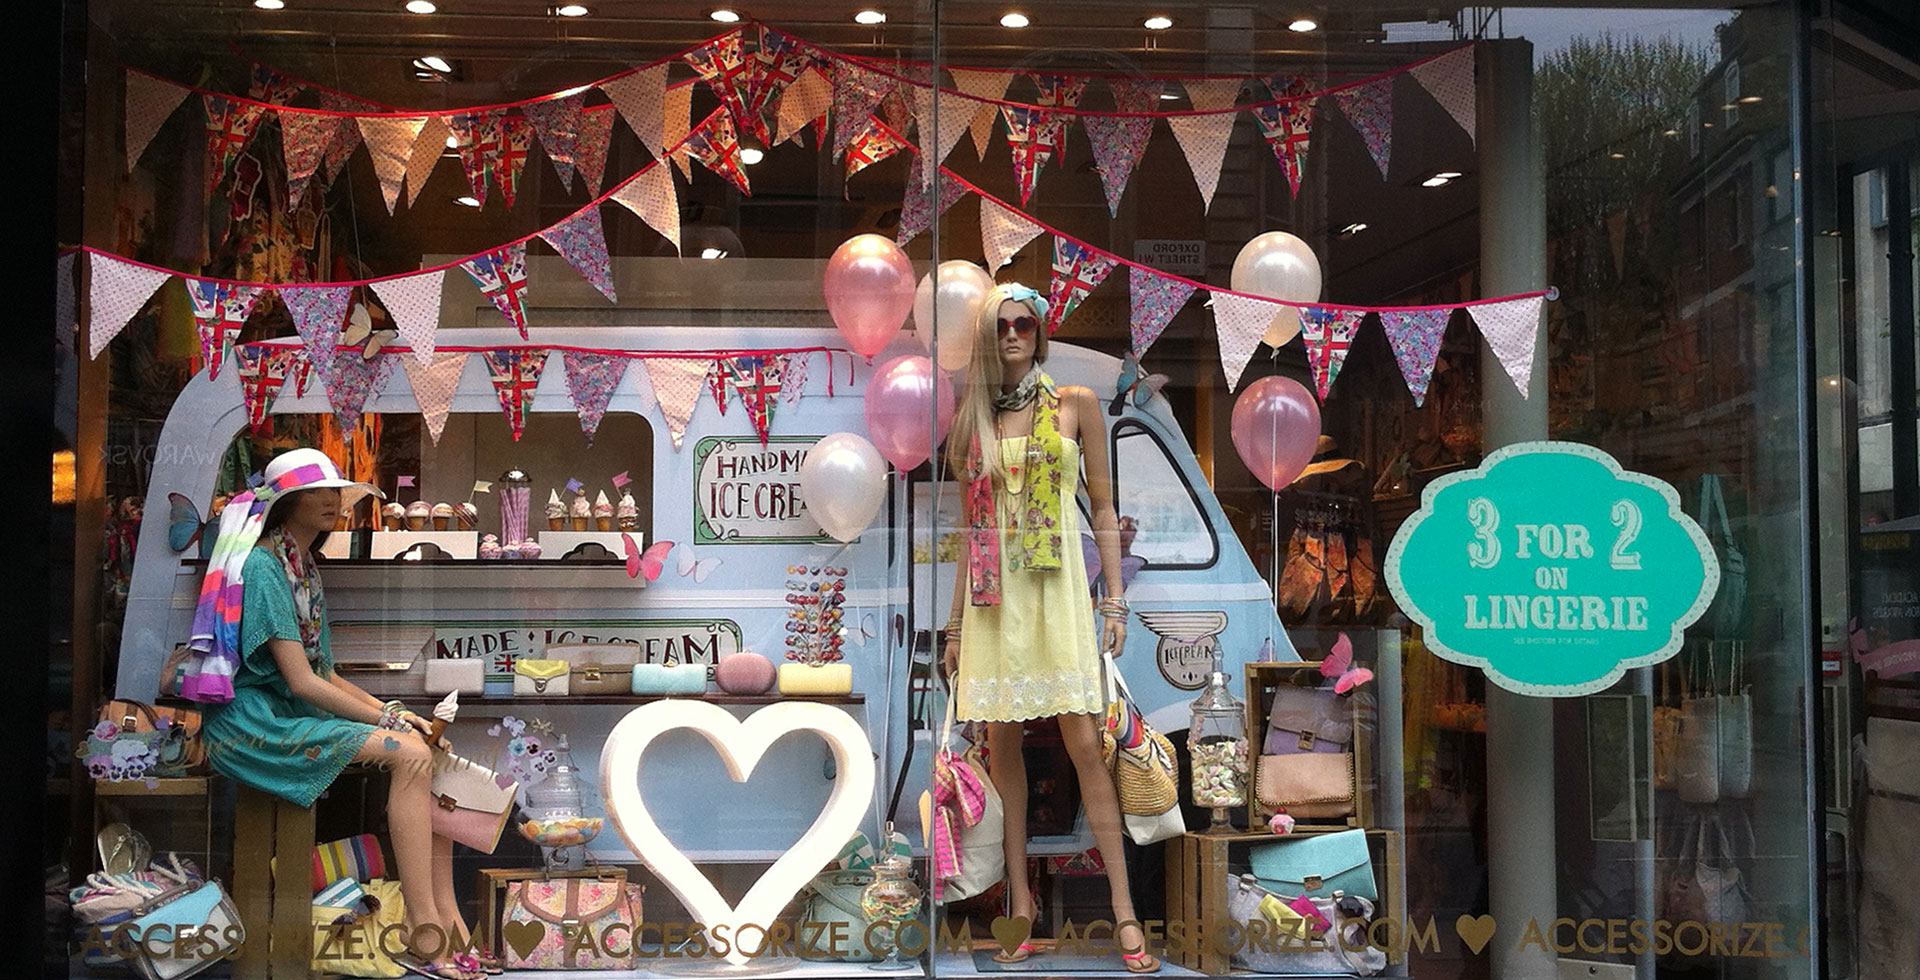 Accessorize Ice Cream Window